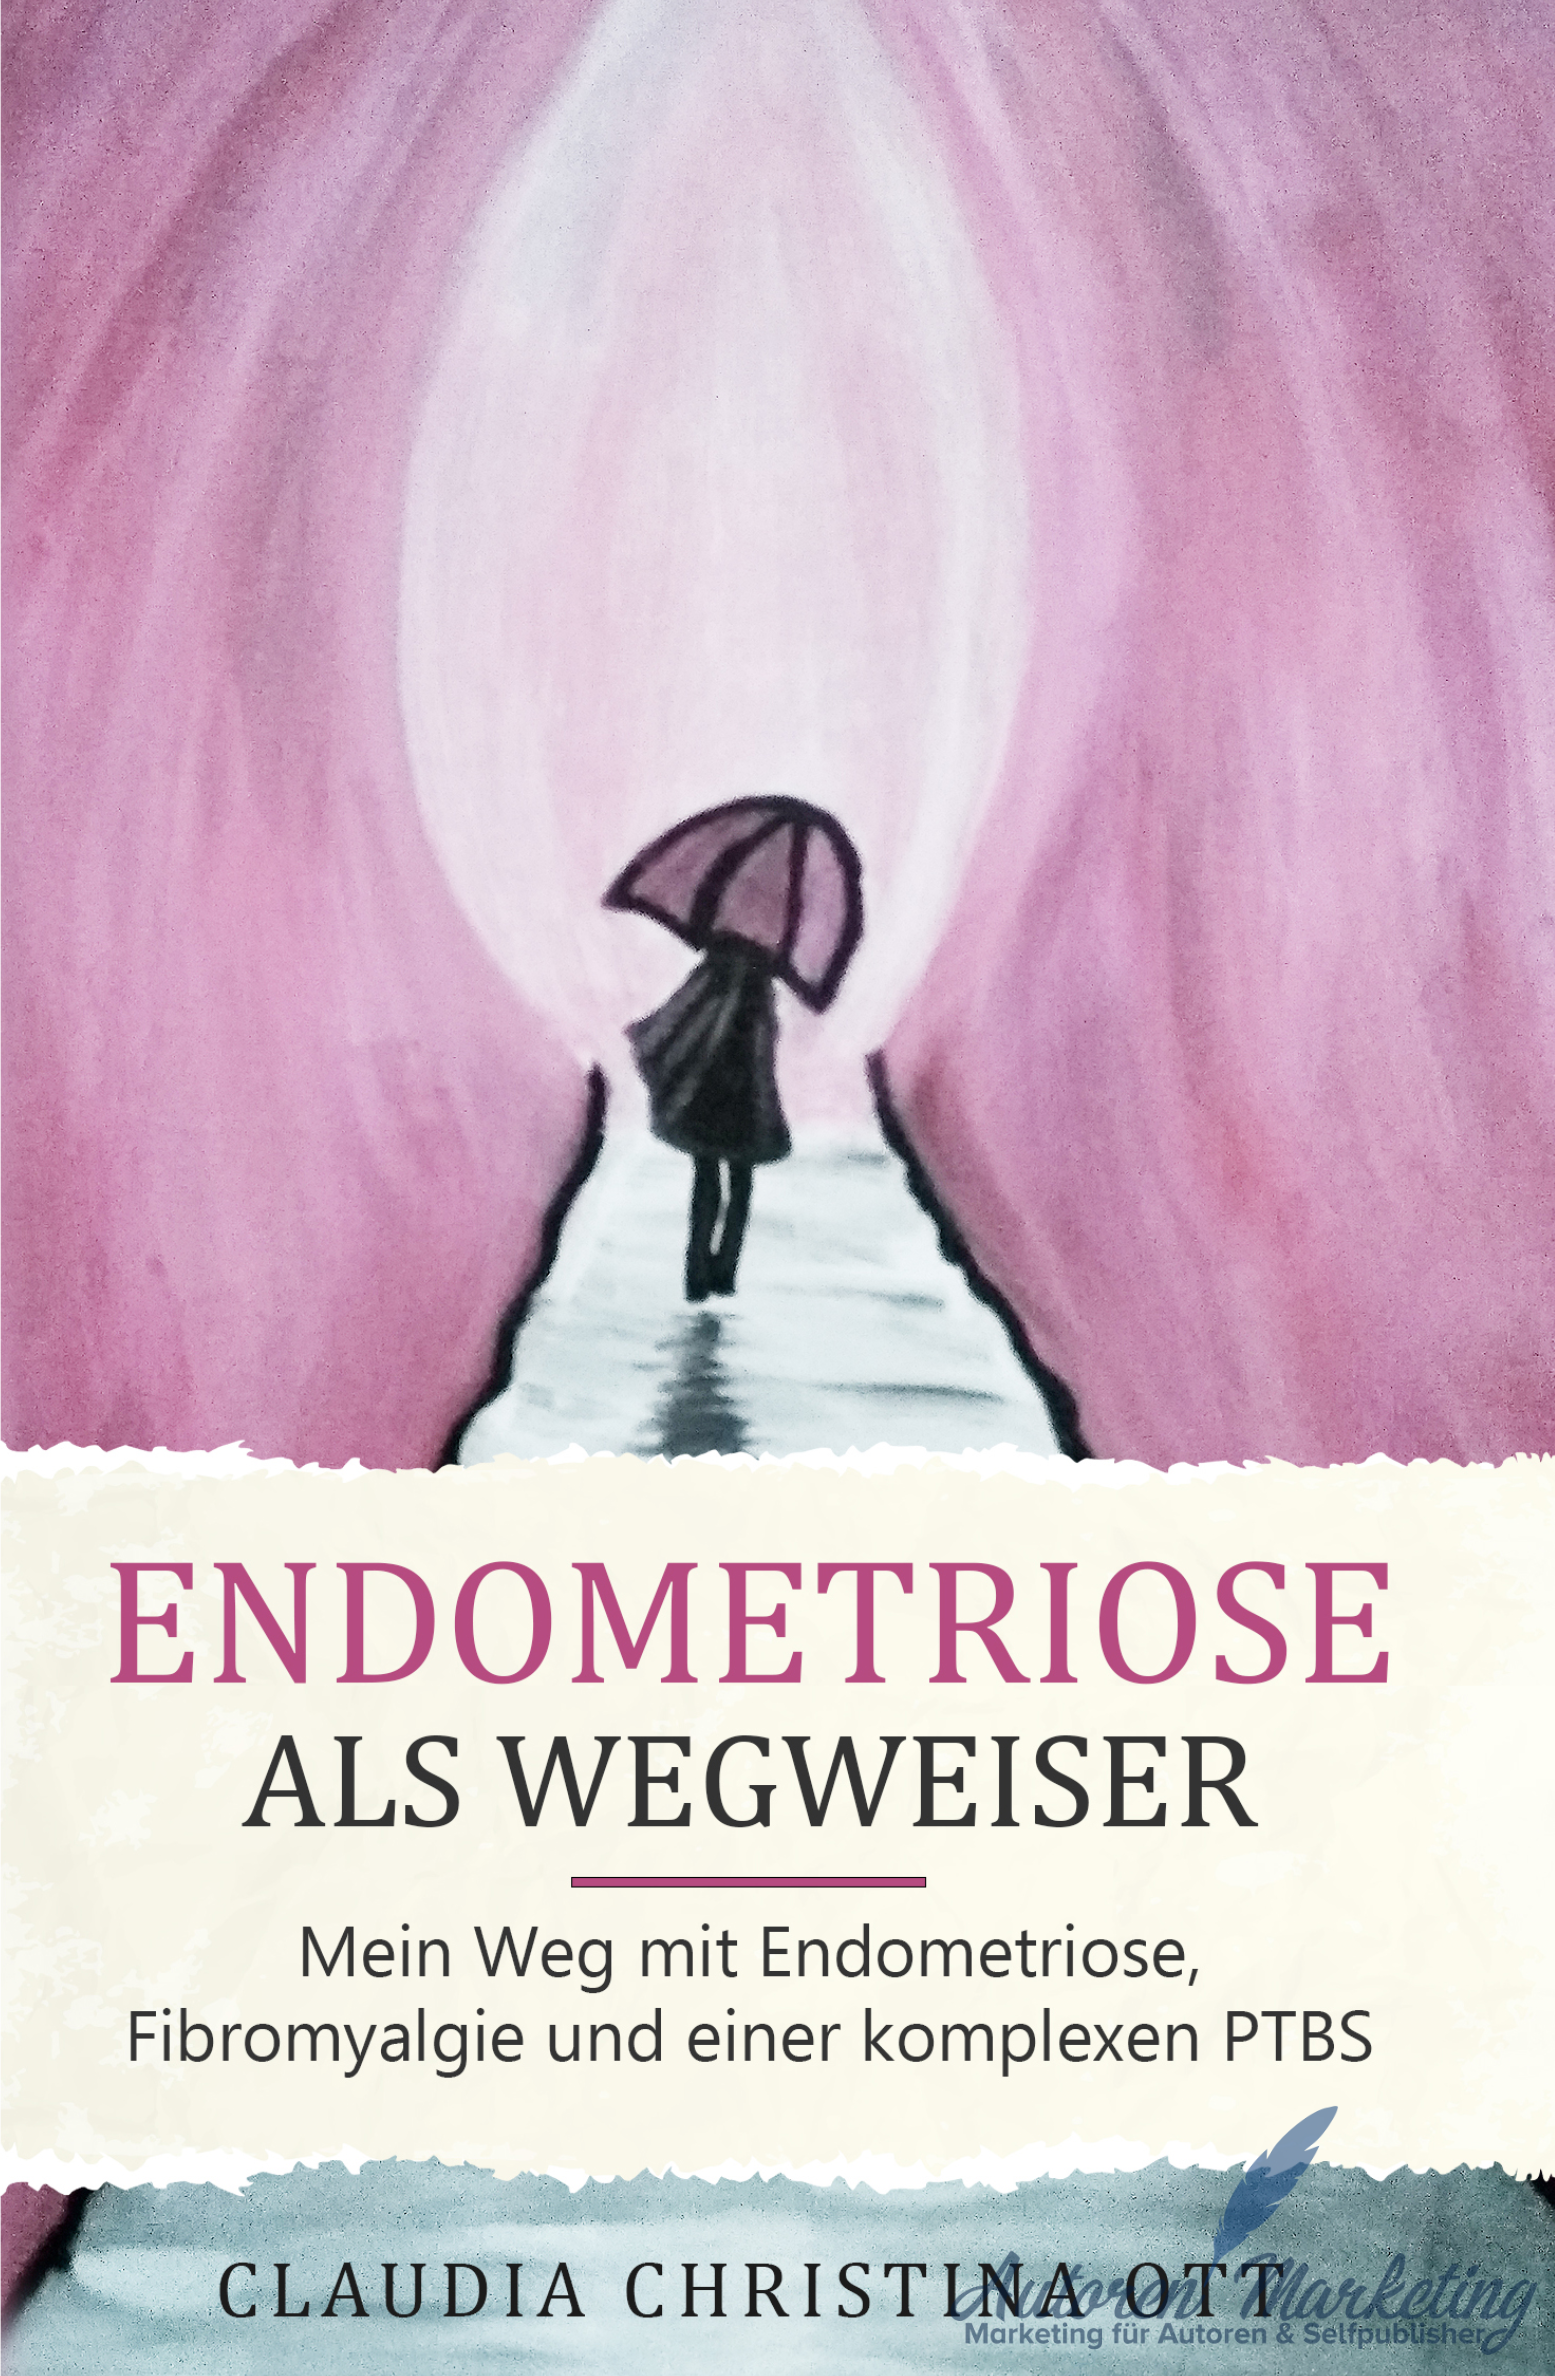 Endometriose Coverdesign Sachbuch